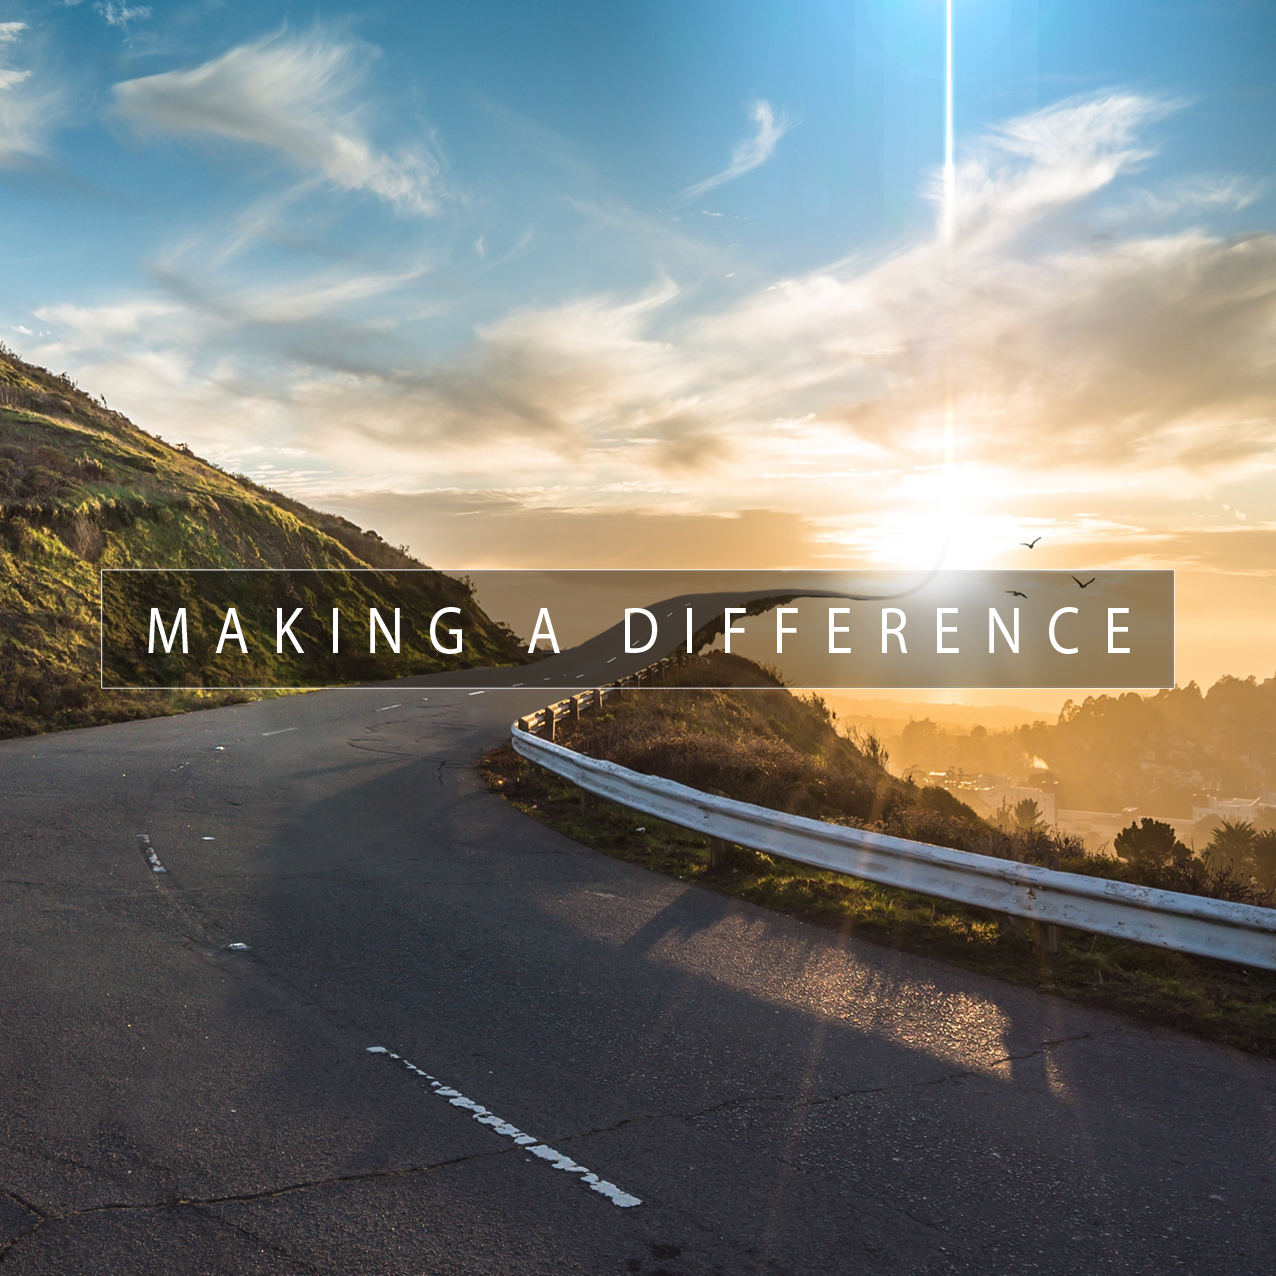 making a difference 4x4.jpg